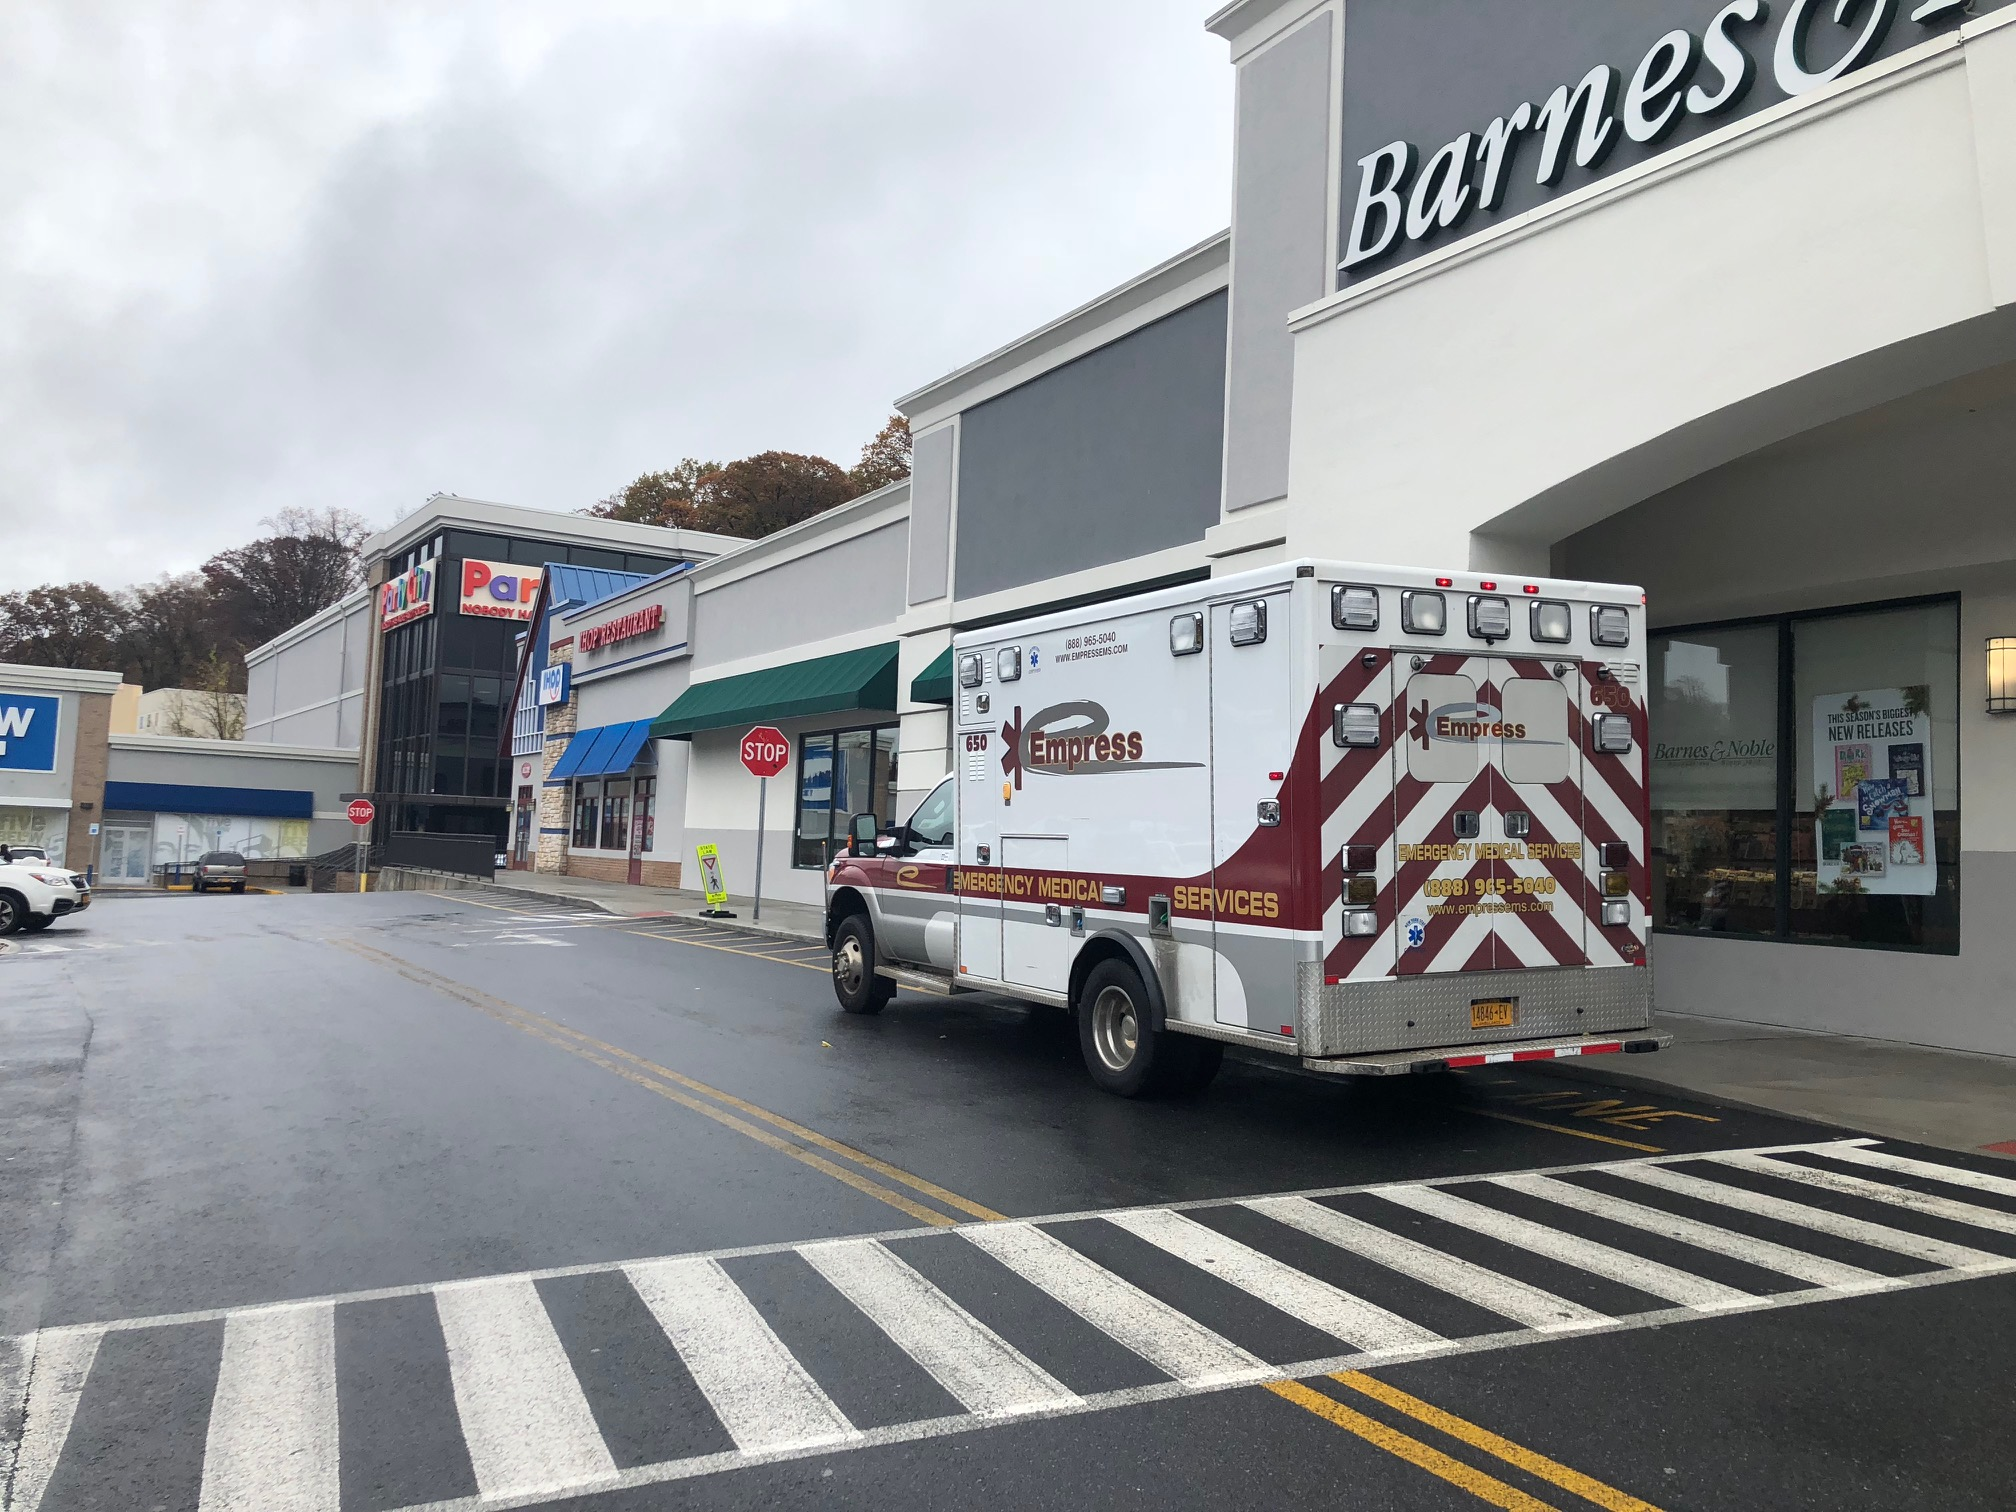 As the ambulance provider to adjacent Yonkers (population 200,000), Empress has dozens of units in the Edgemont area around-the-clock, making it a viable EMS option for the new Village of Edgemont.